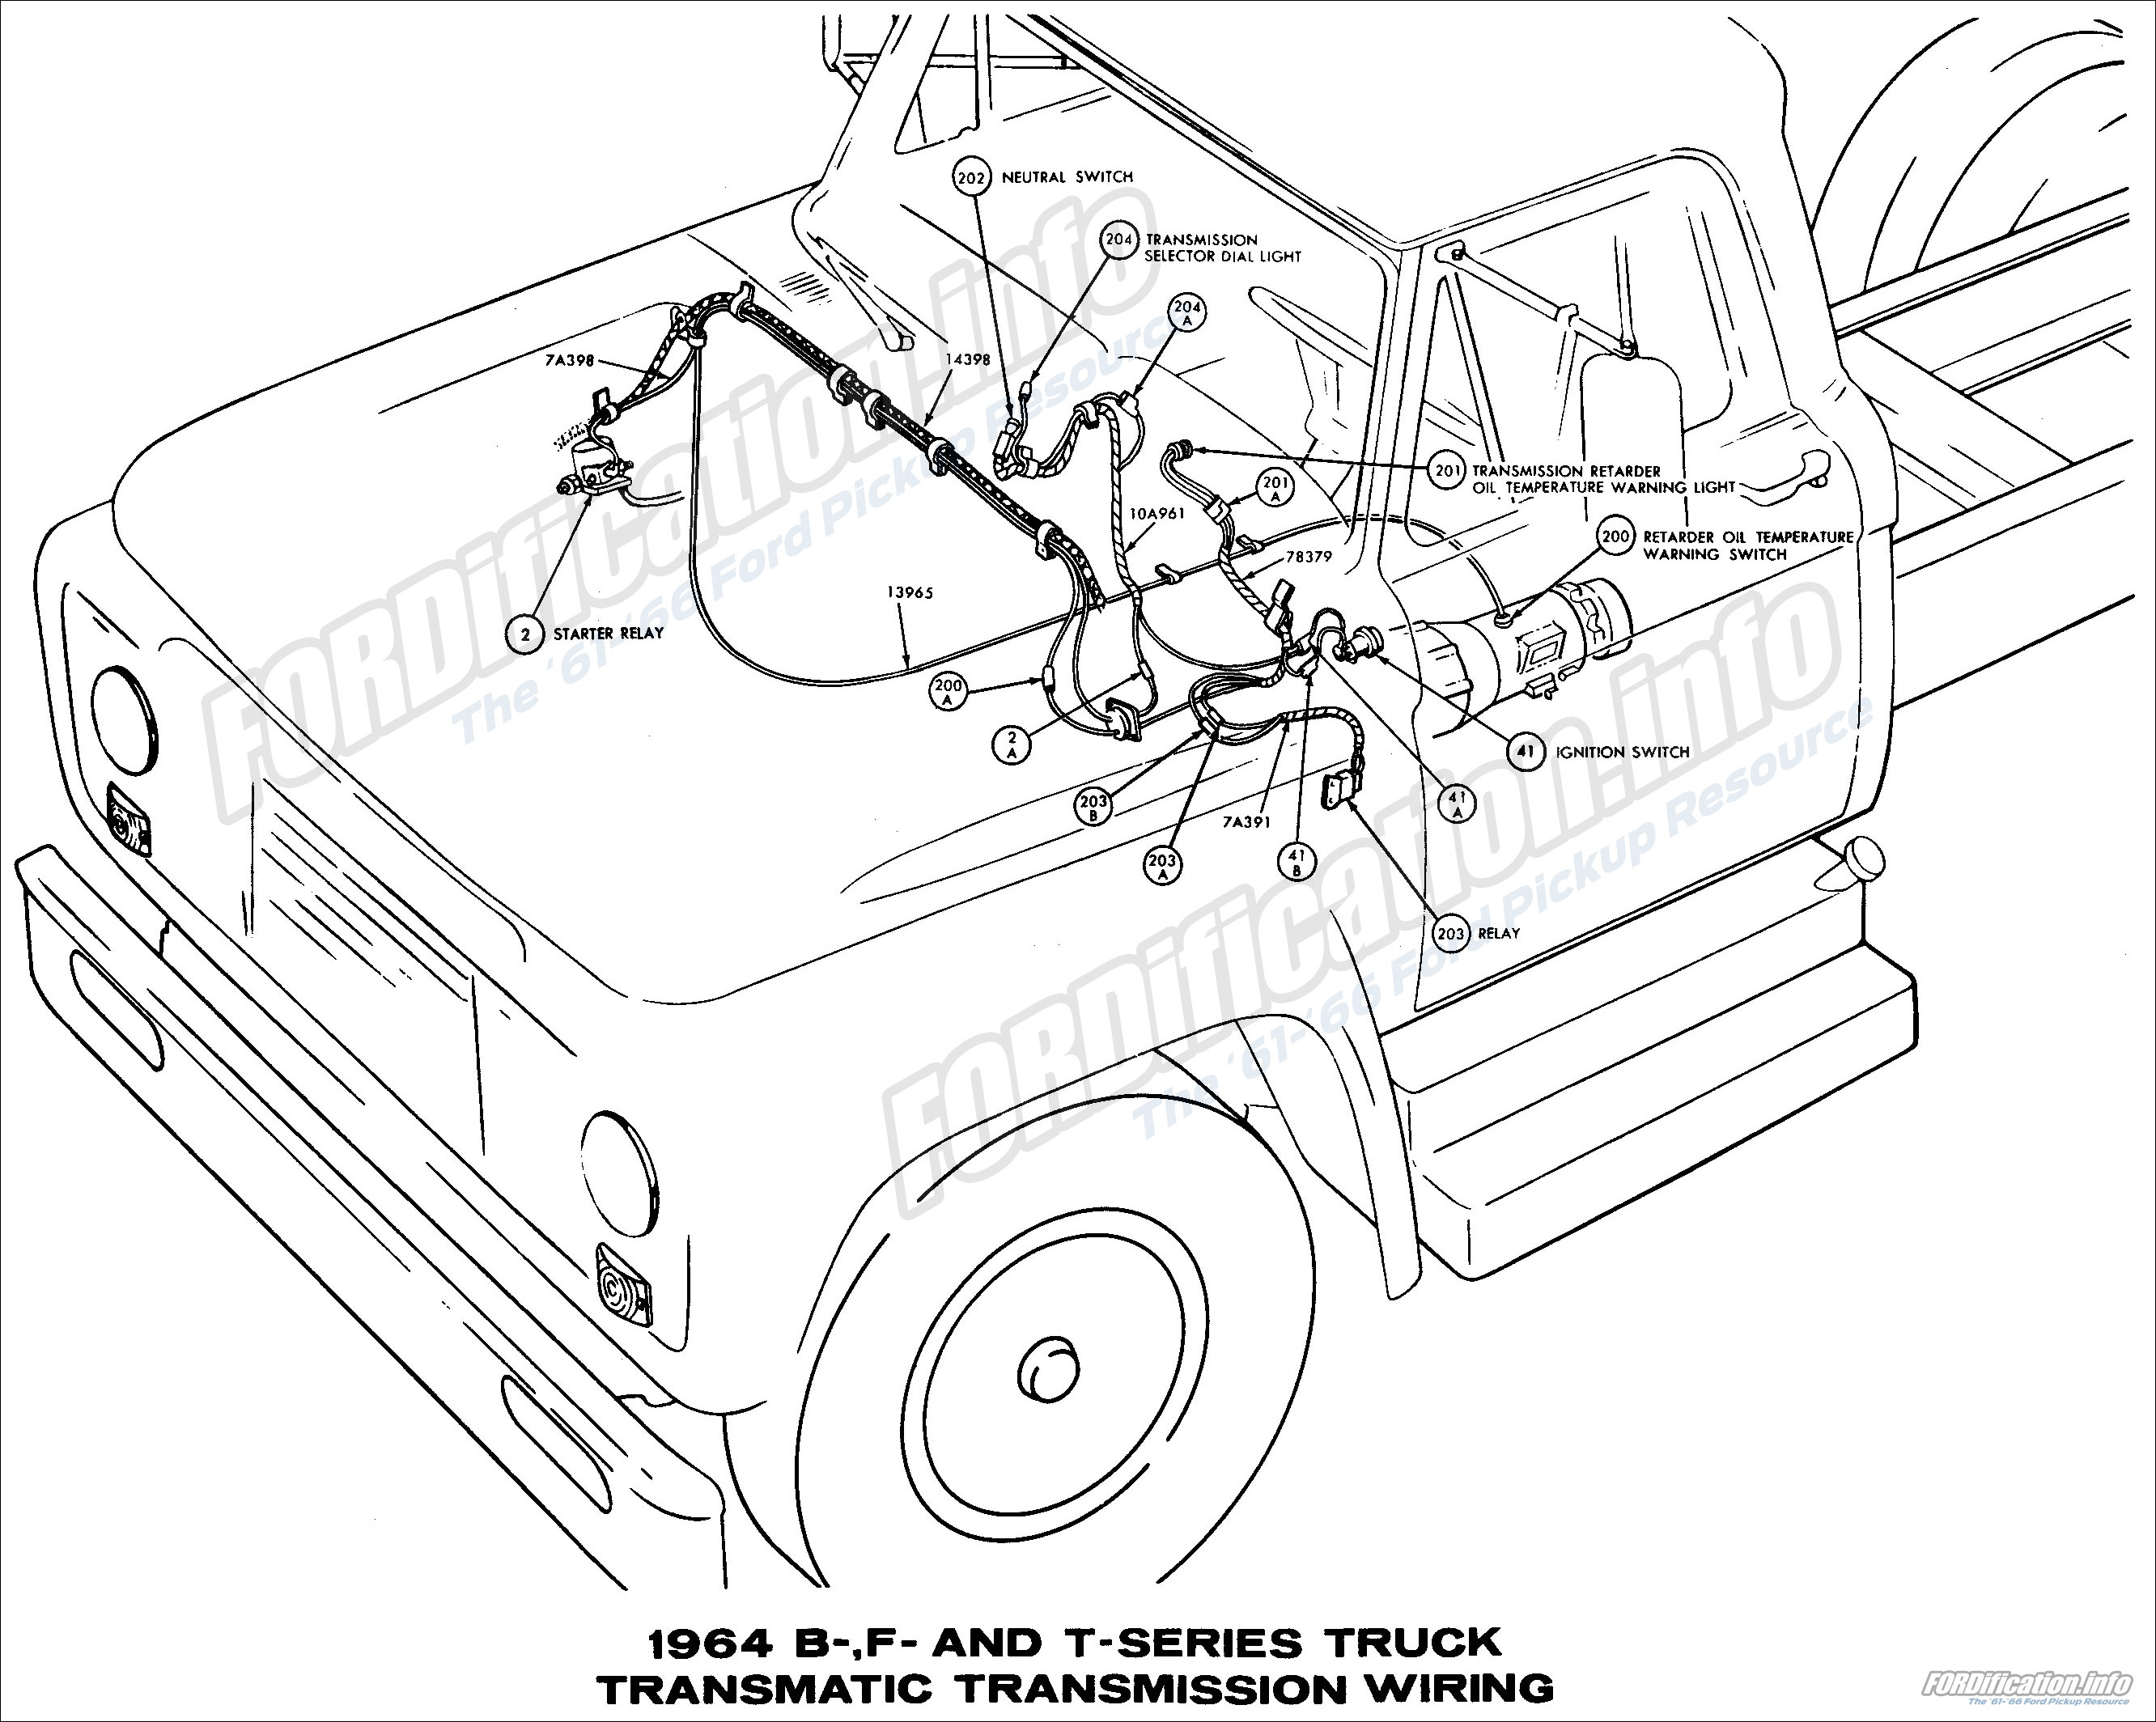 1964_13 1964 ford truck wiring diagrams fordification info the '61 '66 1965 f100 wiring harness at creativeand.co